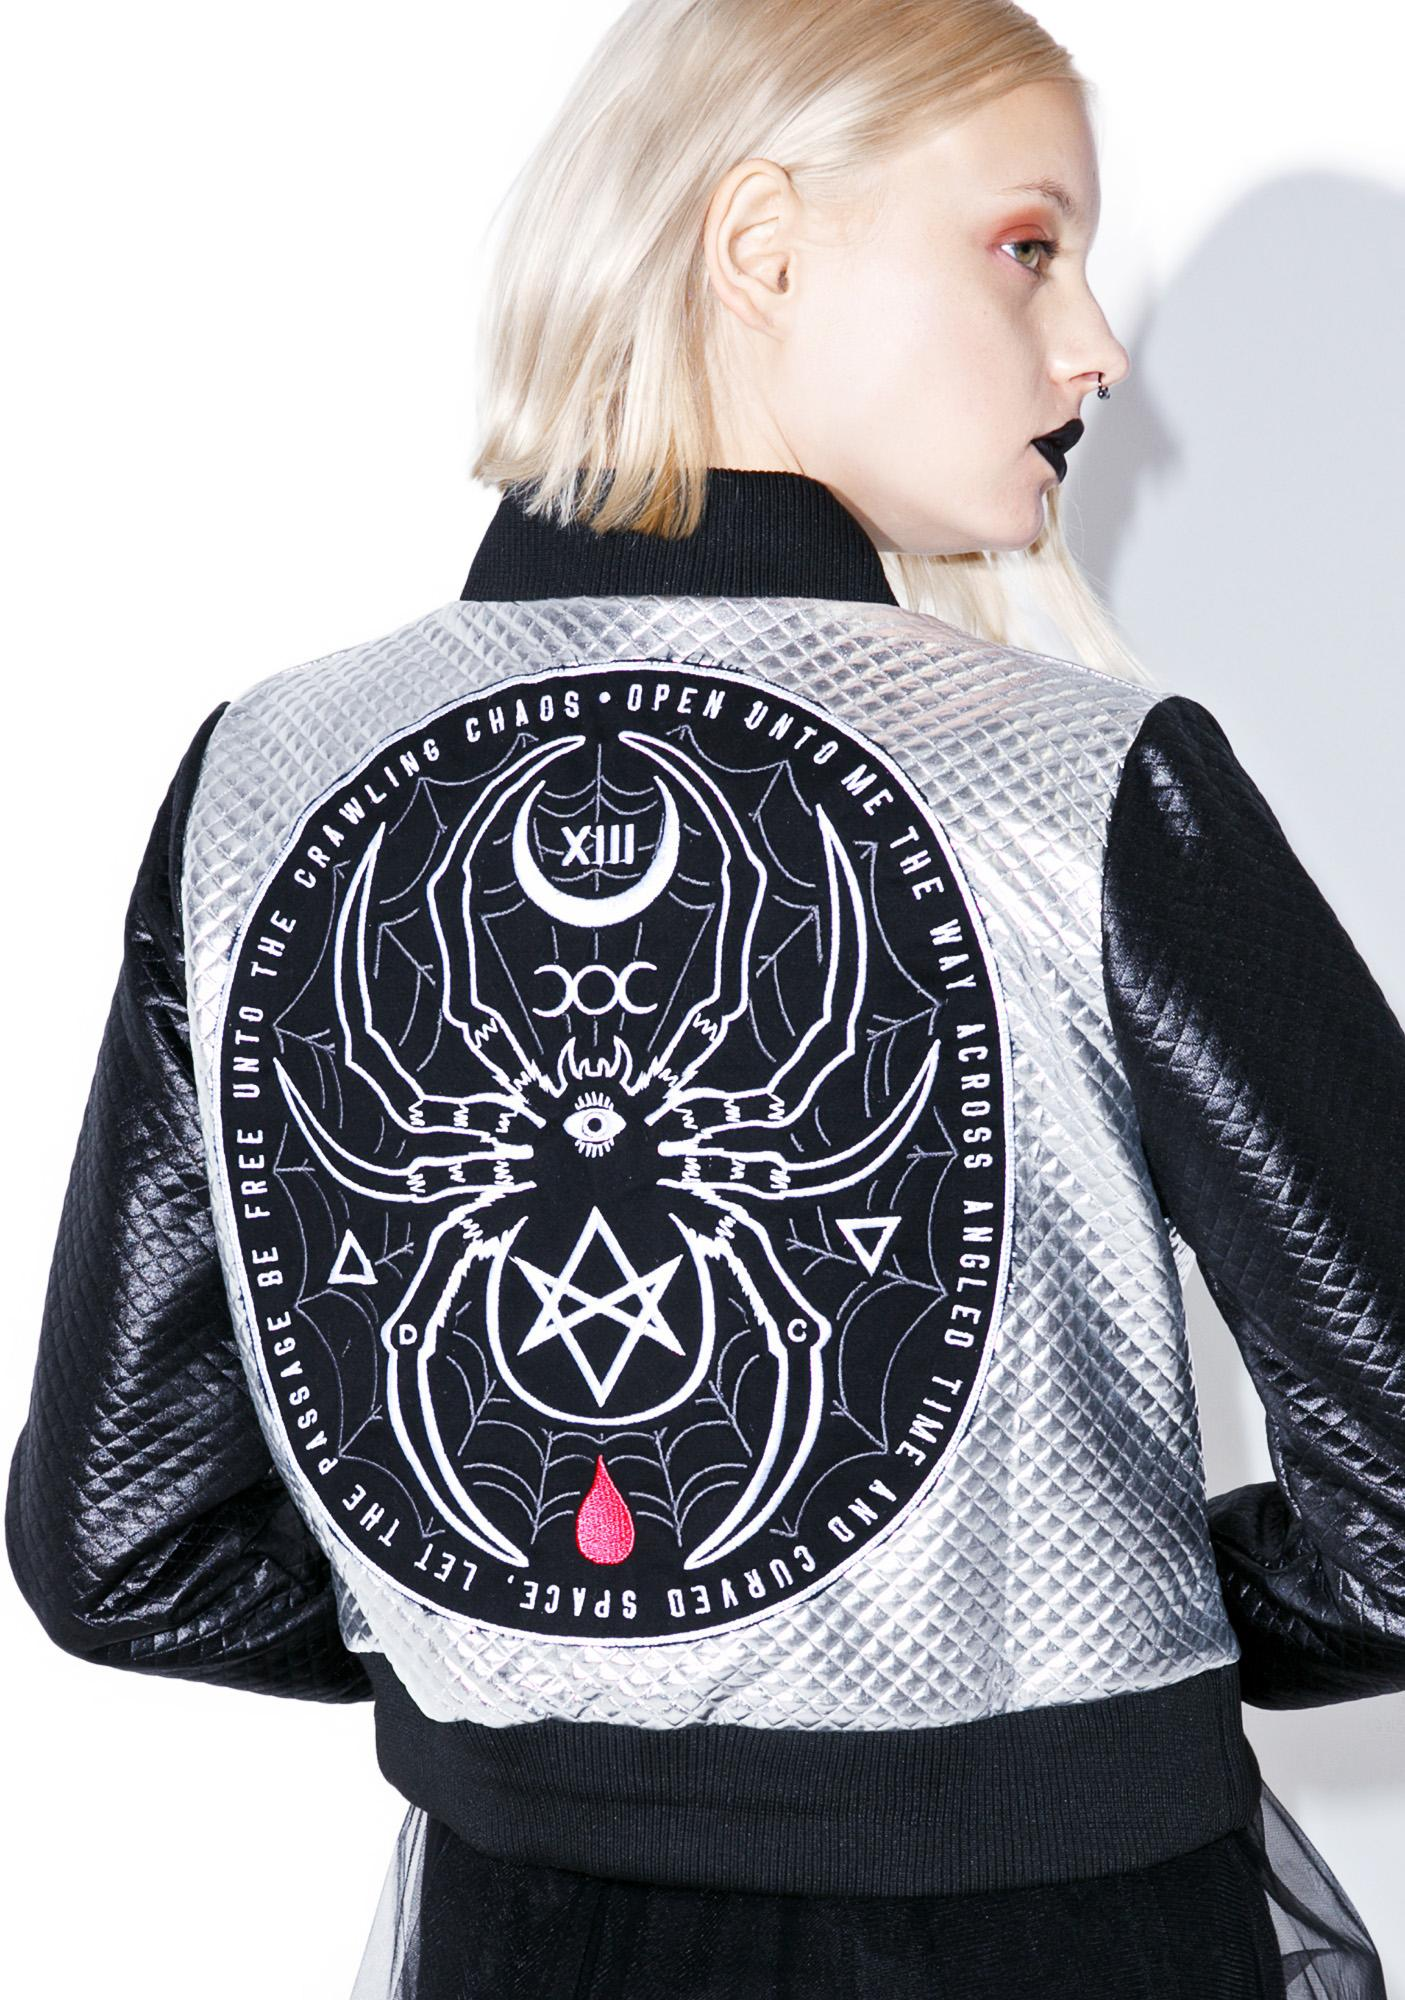 Disturbia Black Widow Bomber Jacket